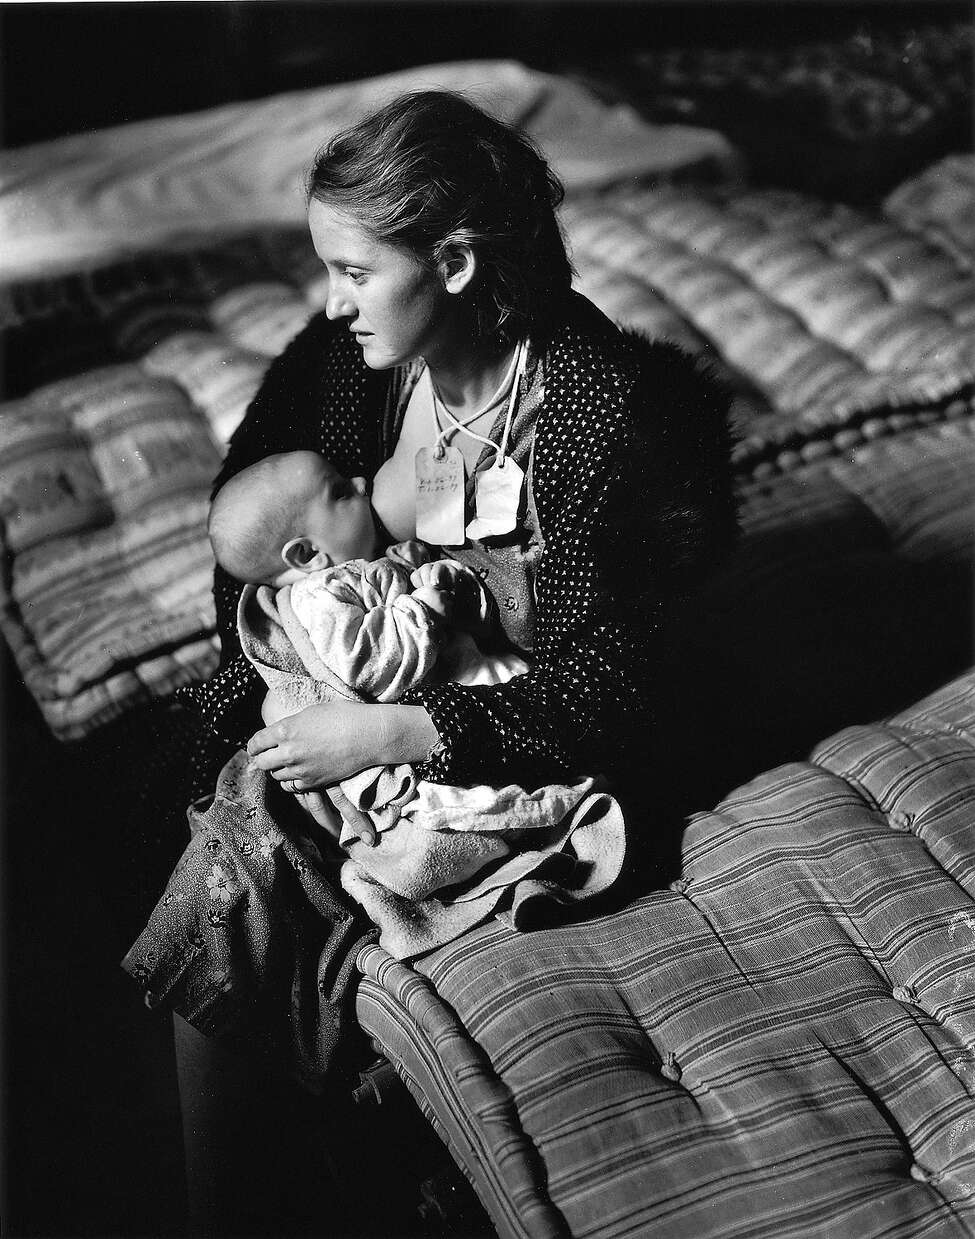 Mrs. Winifred Waver and her baby son, Charles, refugees of flooded Luxora, Ark., wait at a Memphis, Tenn., refugee camp for floodwaters to subside Jan. 29, 1937. The tags on their necks provide identification.